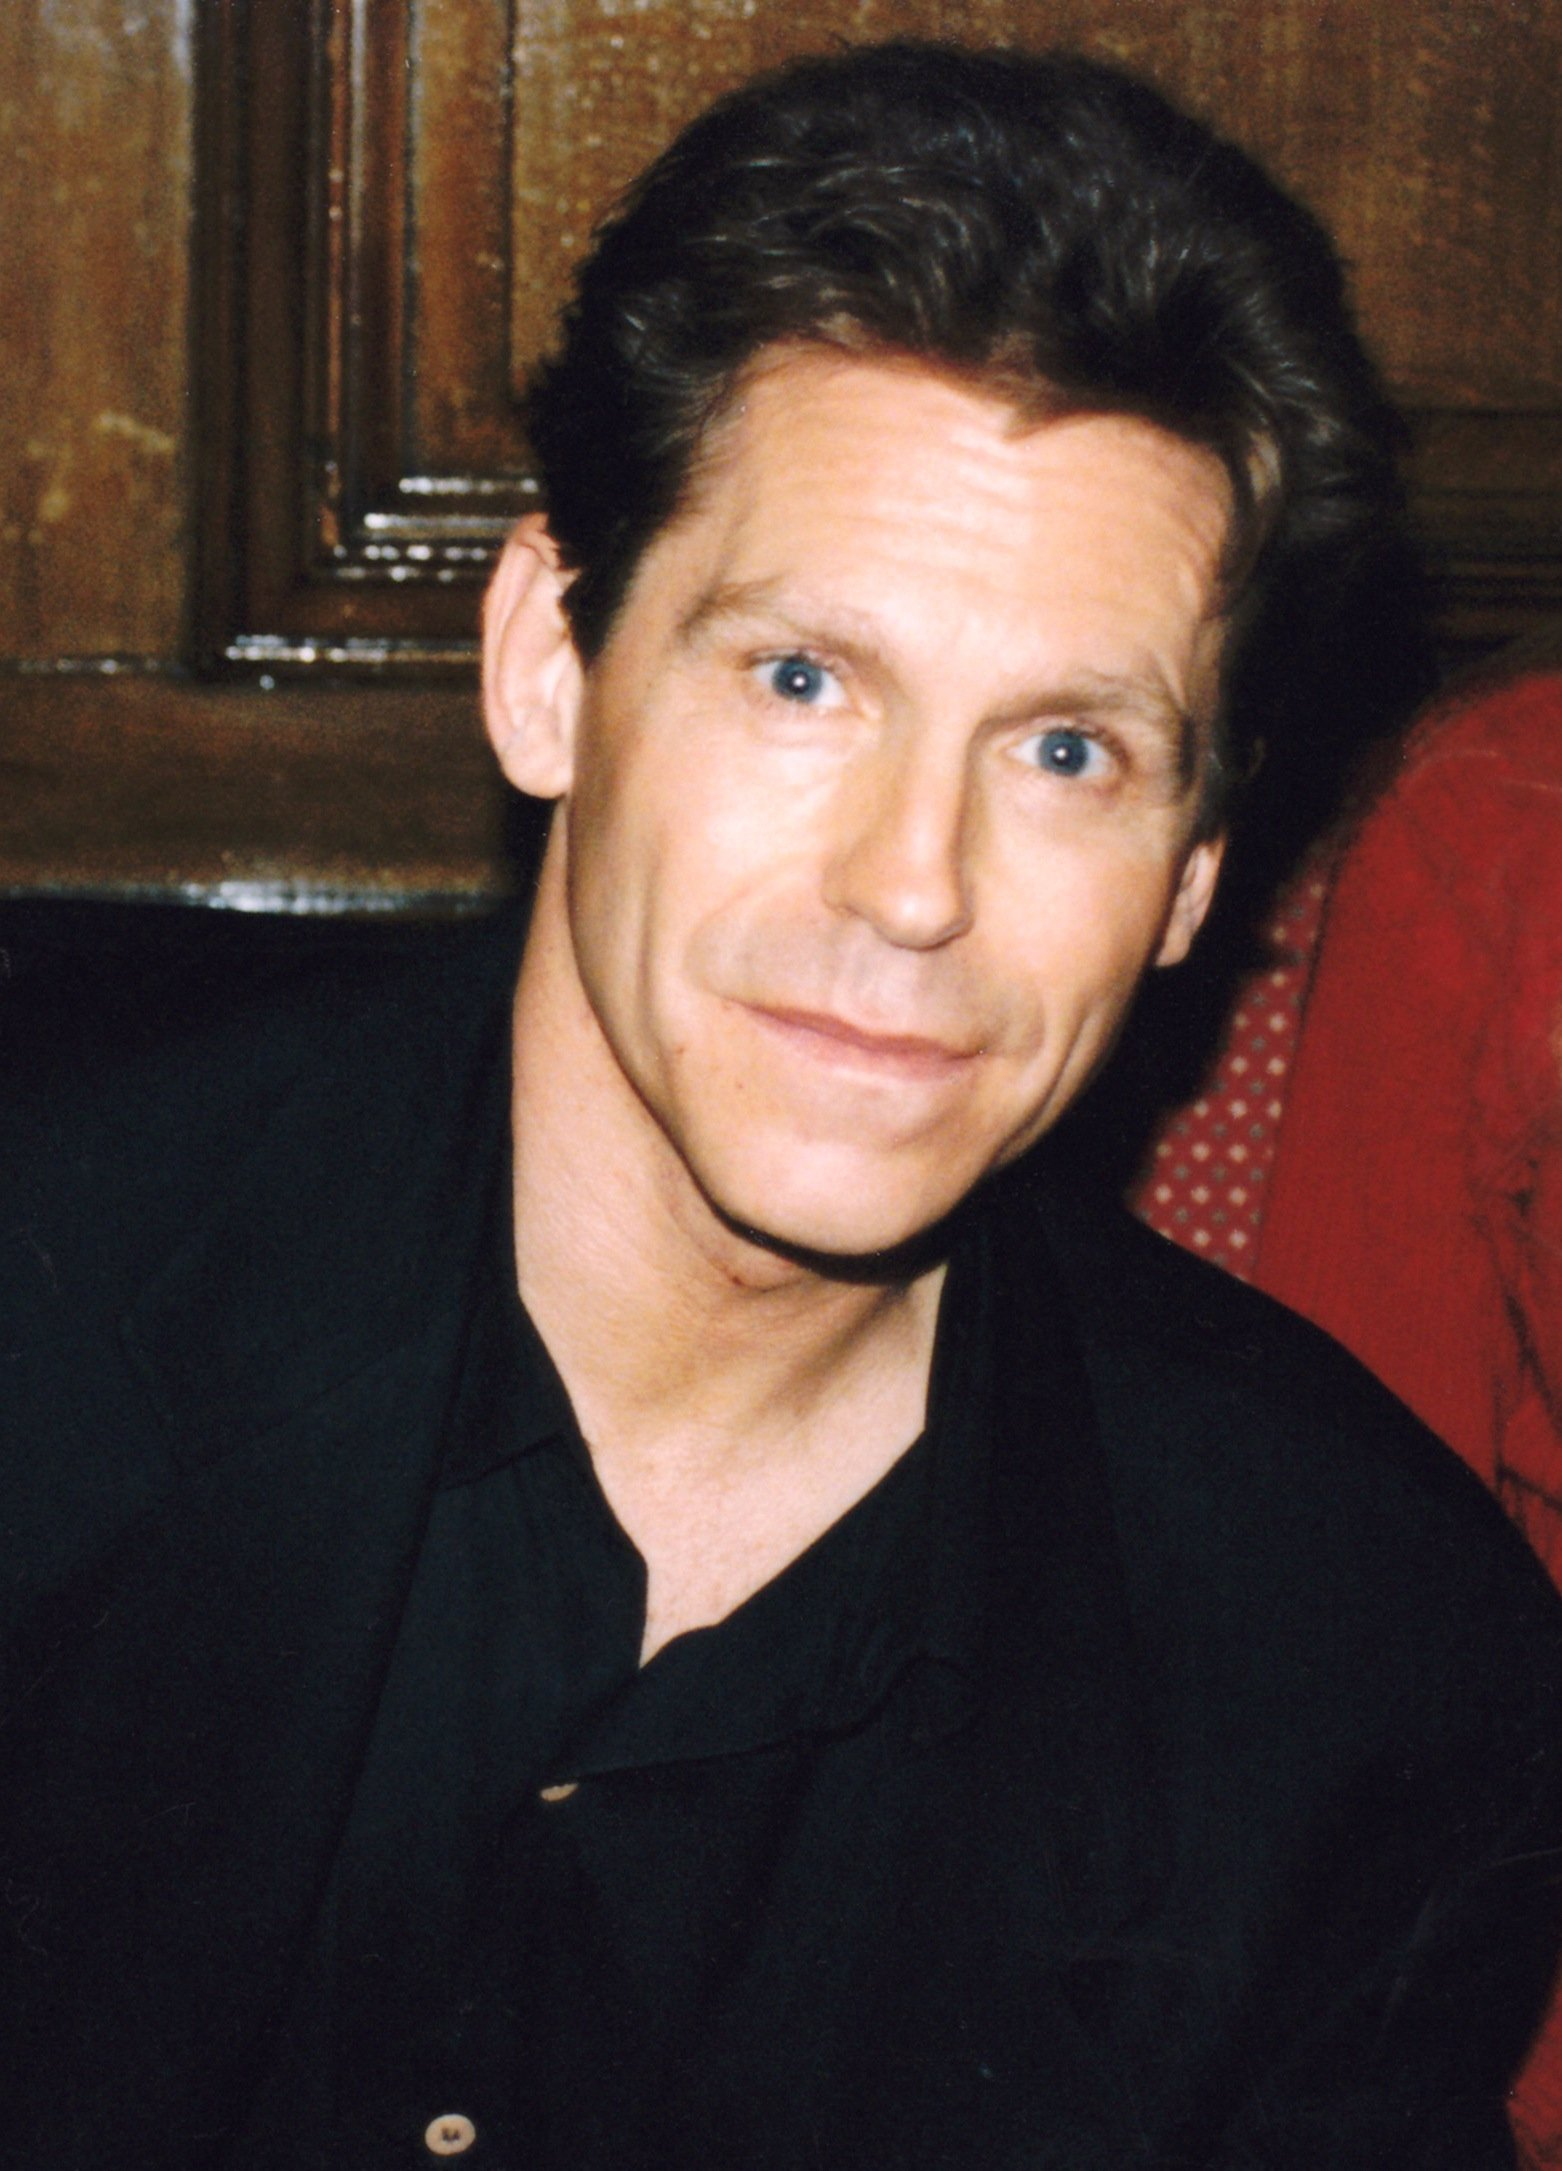 Jeff Conaway at a TV convention in 1998   Photo: CC BY-SA 2.0, Wikimedia Commons Images